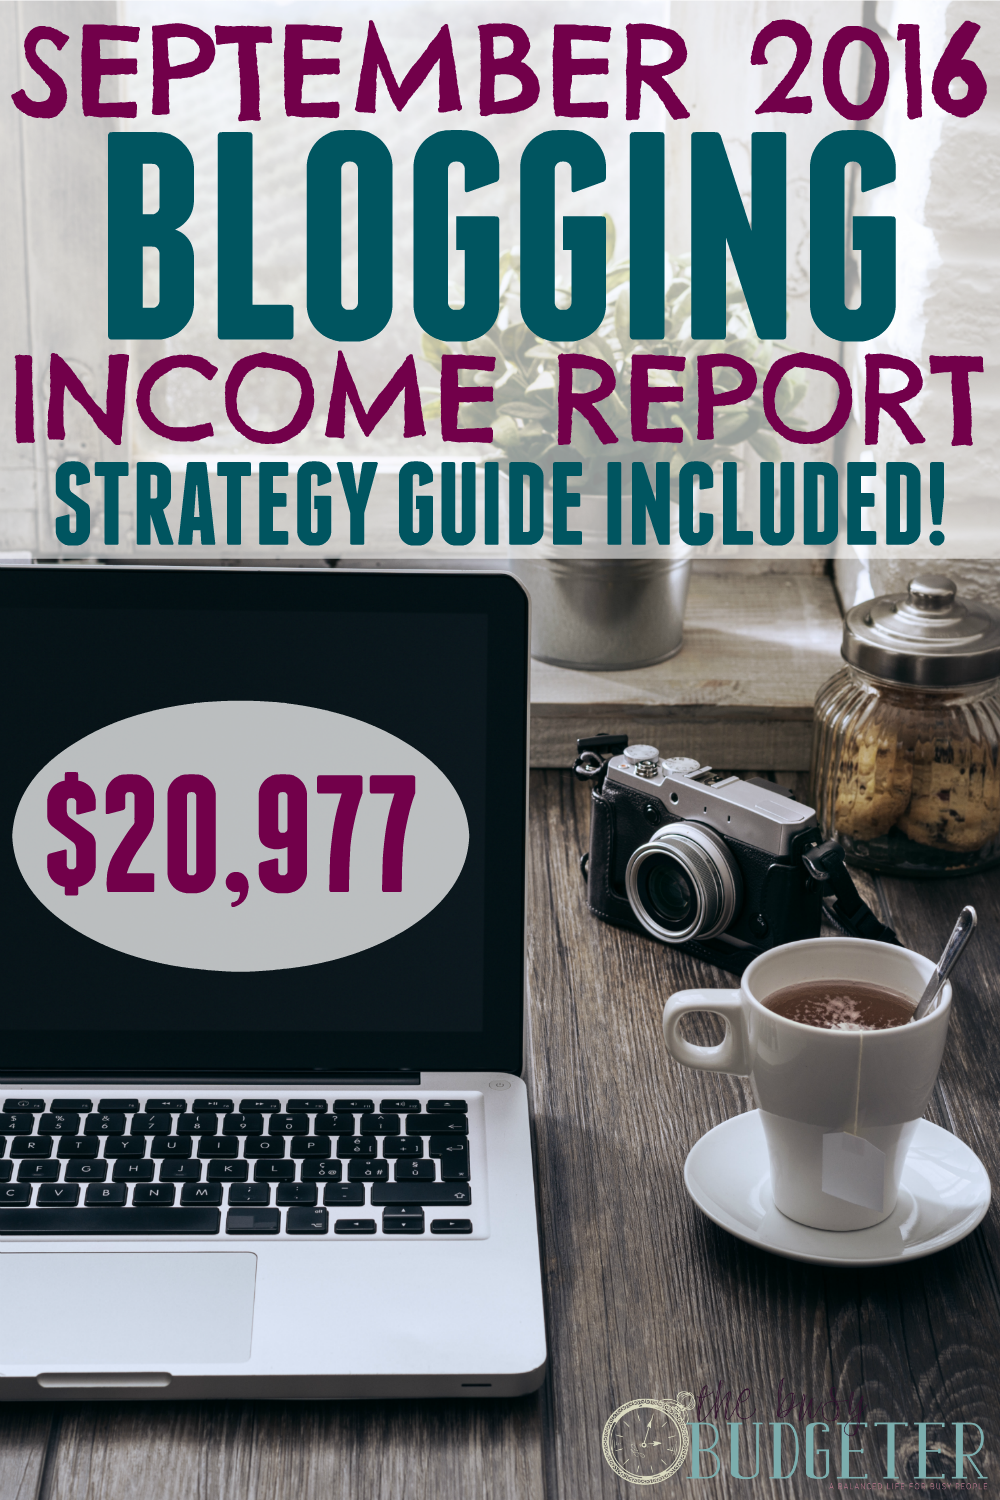 September 2016 Blog Income Report. Details the strategy she used to grow her blog to over $20,00/month income in less than two years! She was making a full-time income from blogging less than 10 months after starting her blog! This is insanely awesome! I make just a little over than in a year! Great blogging tips, and she even has ideas on how to monetize the blog and make extra money from home. I love the way she tracks her blogging income.